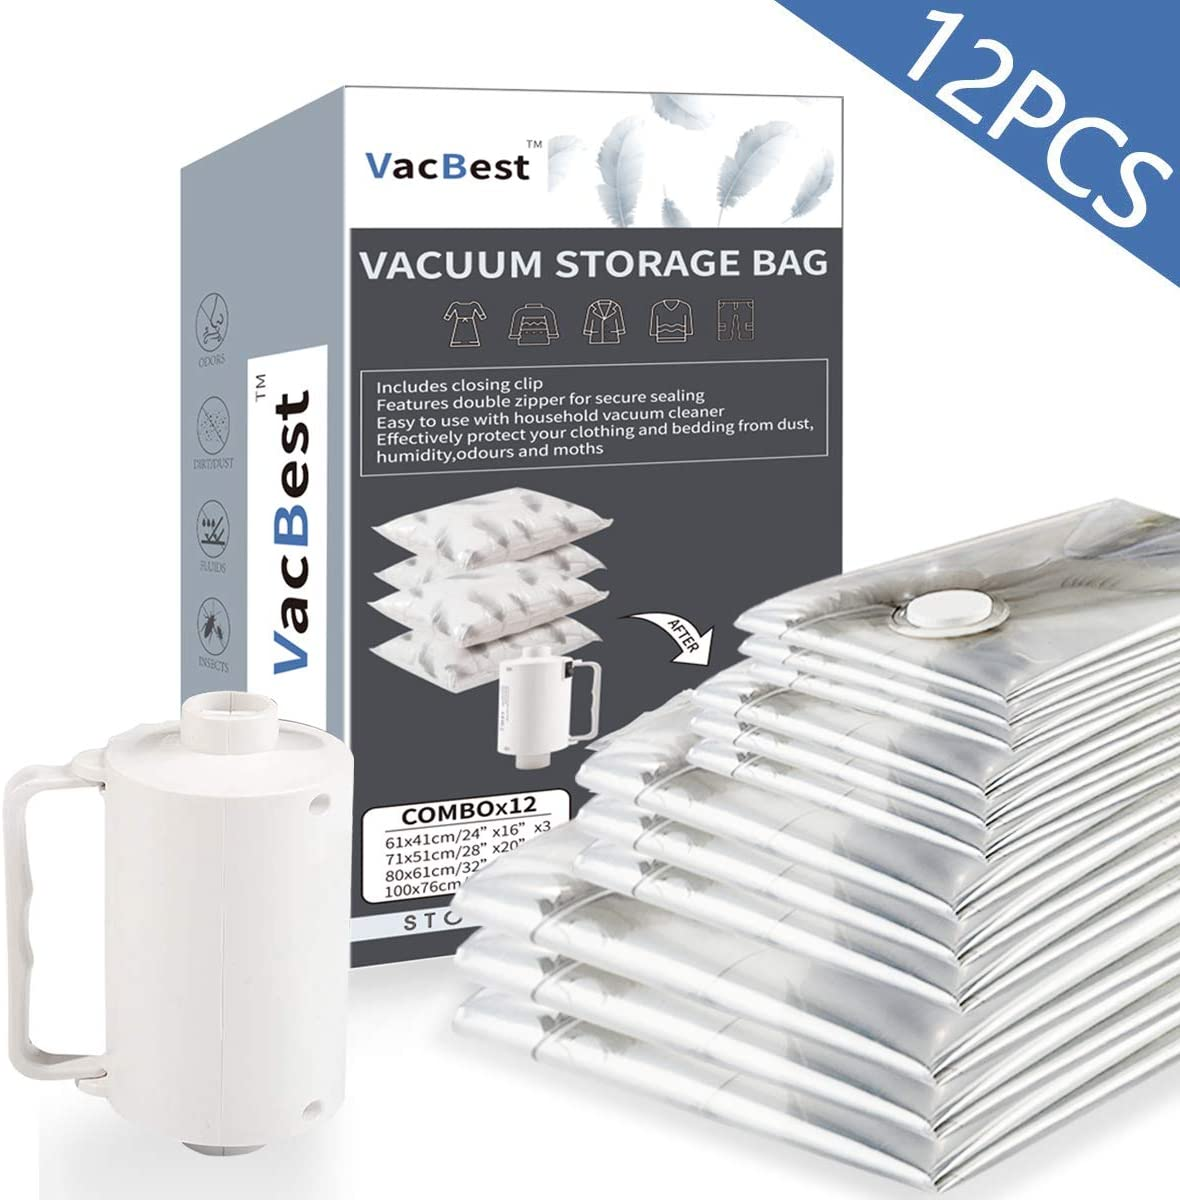 VacBest Vacuum Storage Space Saver Bags 12 Combo (3 Small, 3 Medium, 3Large + 3 Jumbo) with a Powerful Electric Pump for Travel and Household Usage